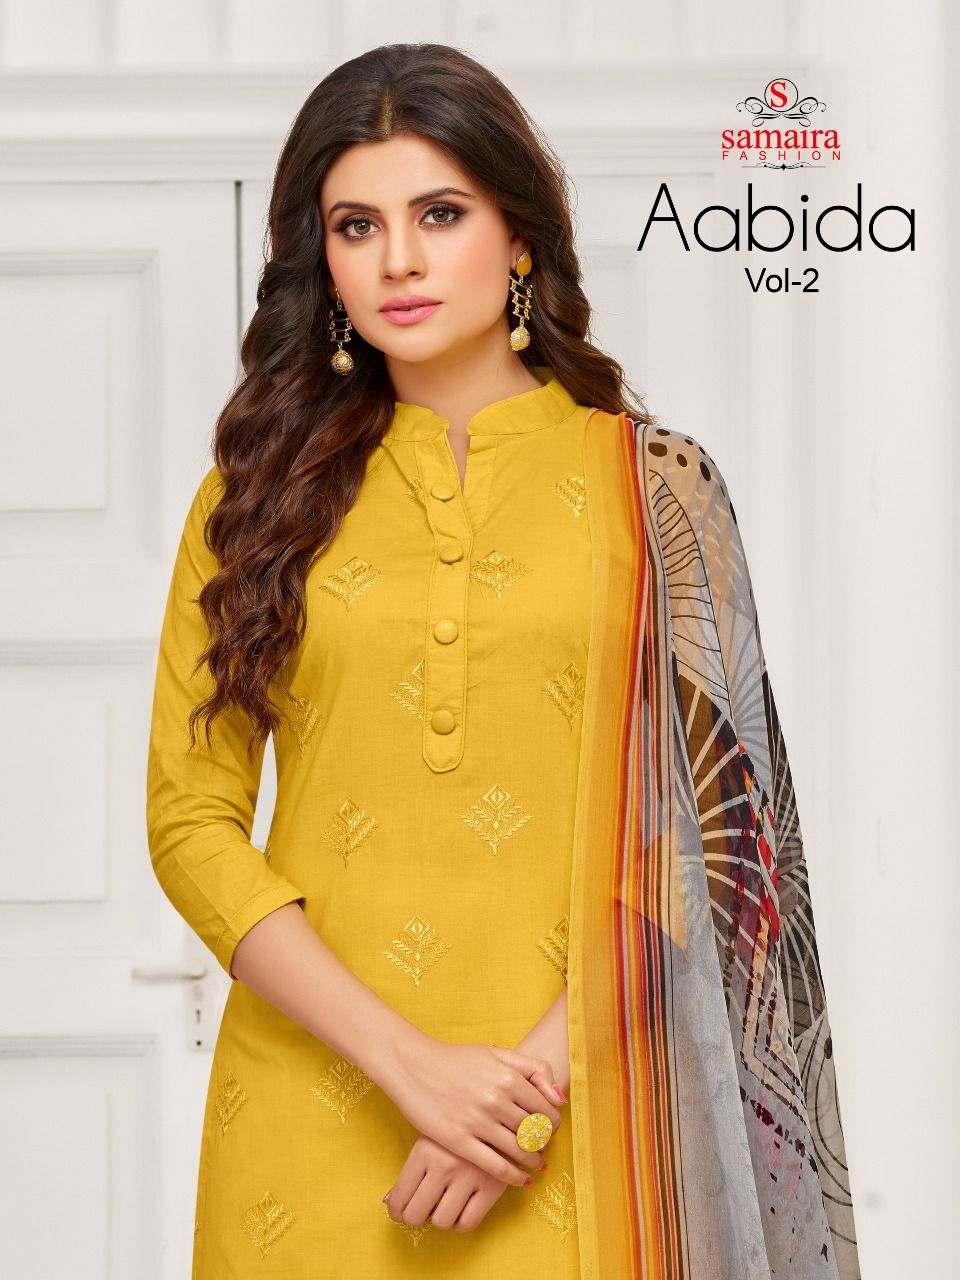 a97e360957 Samaira Fashion Aabida Vol 2 Printed Cambric Cotton with Embroidery Work  Dress Material at Wholesale Rate